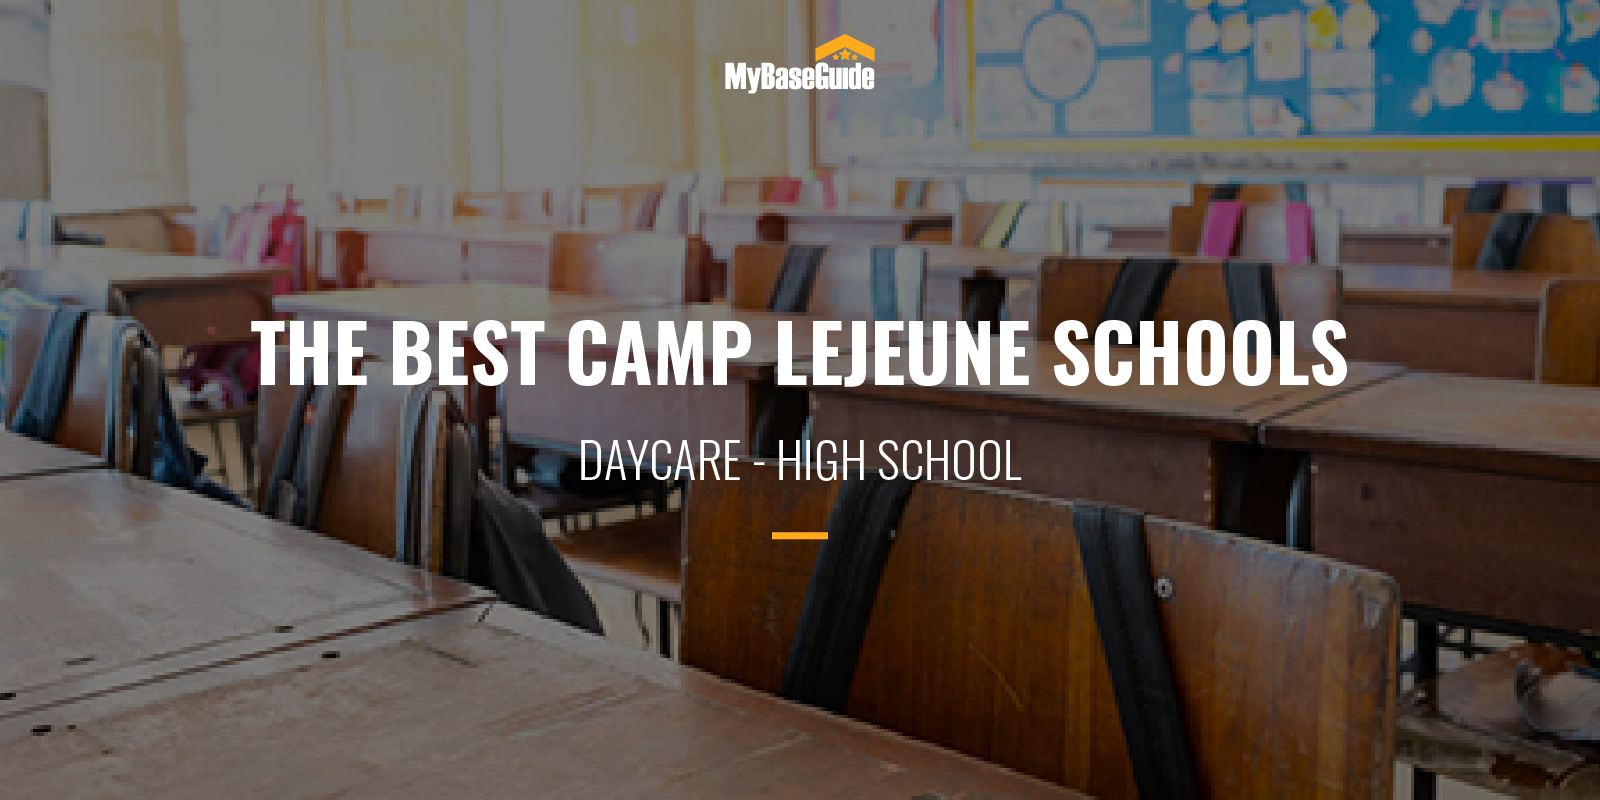 The Best Camp Lejeune Schools